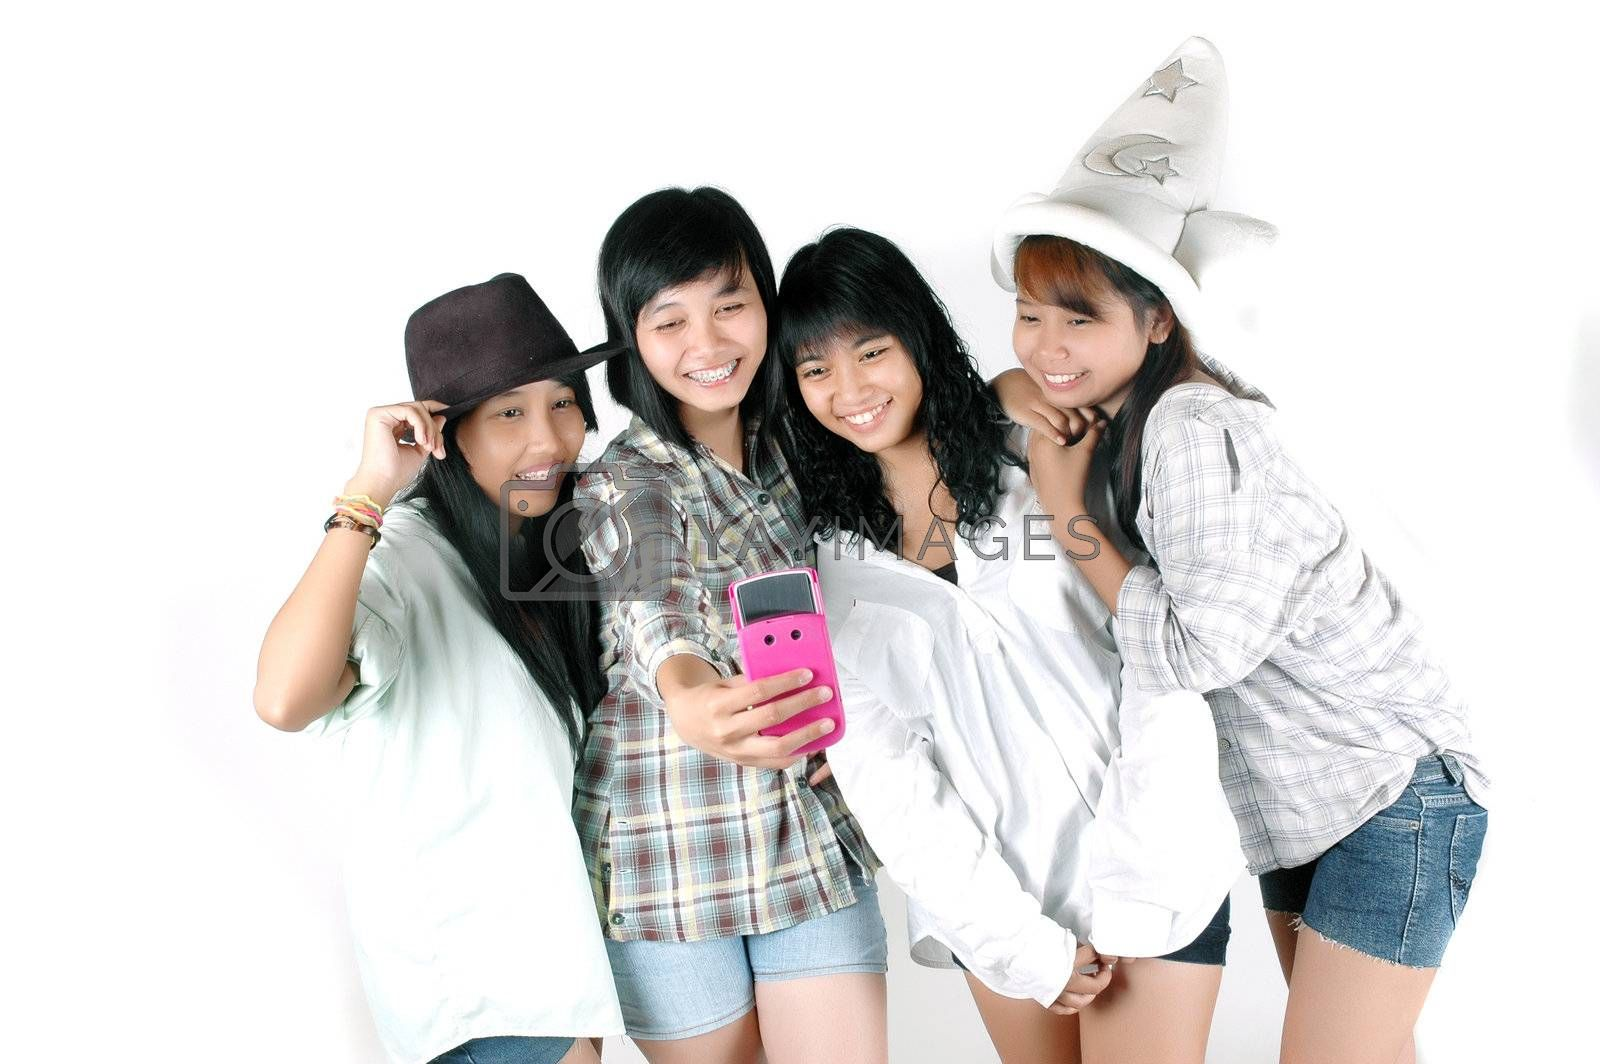 teenage girls take pictures with cell phone cameras photographed  in the  studio